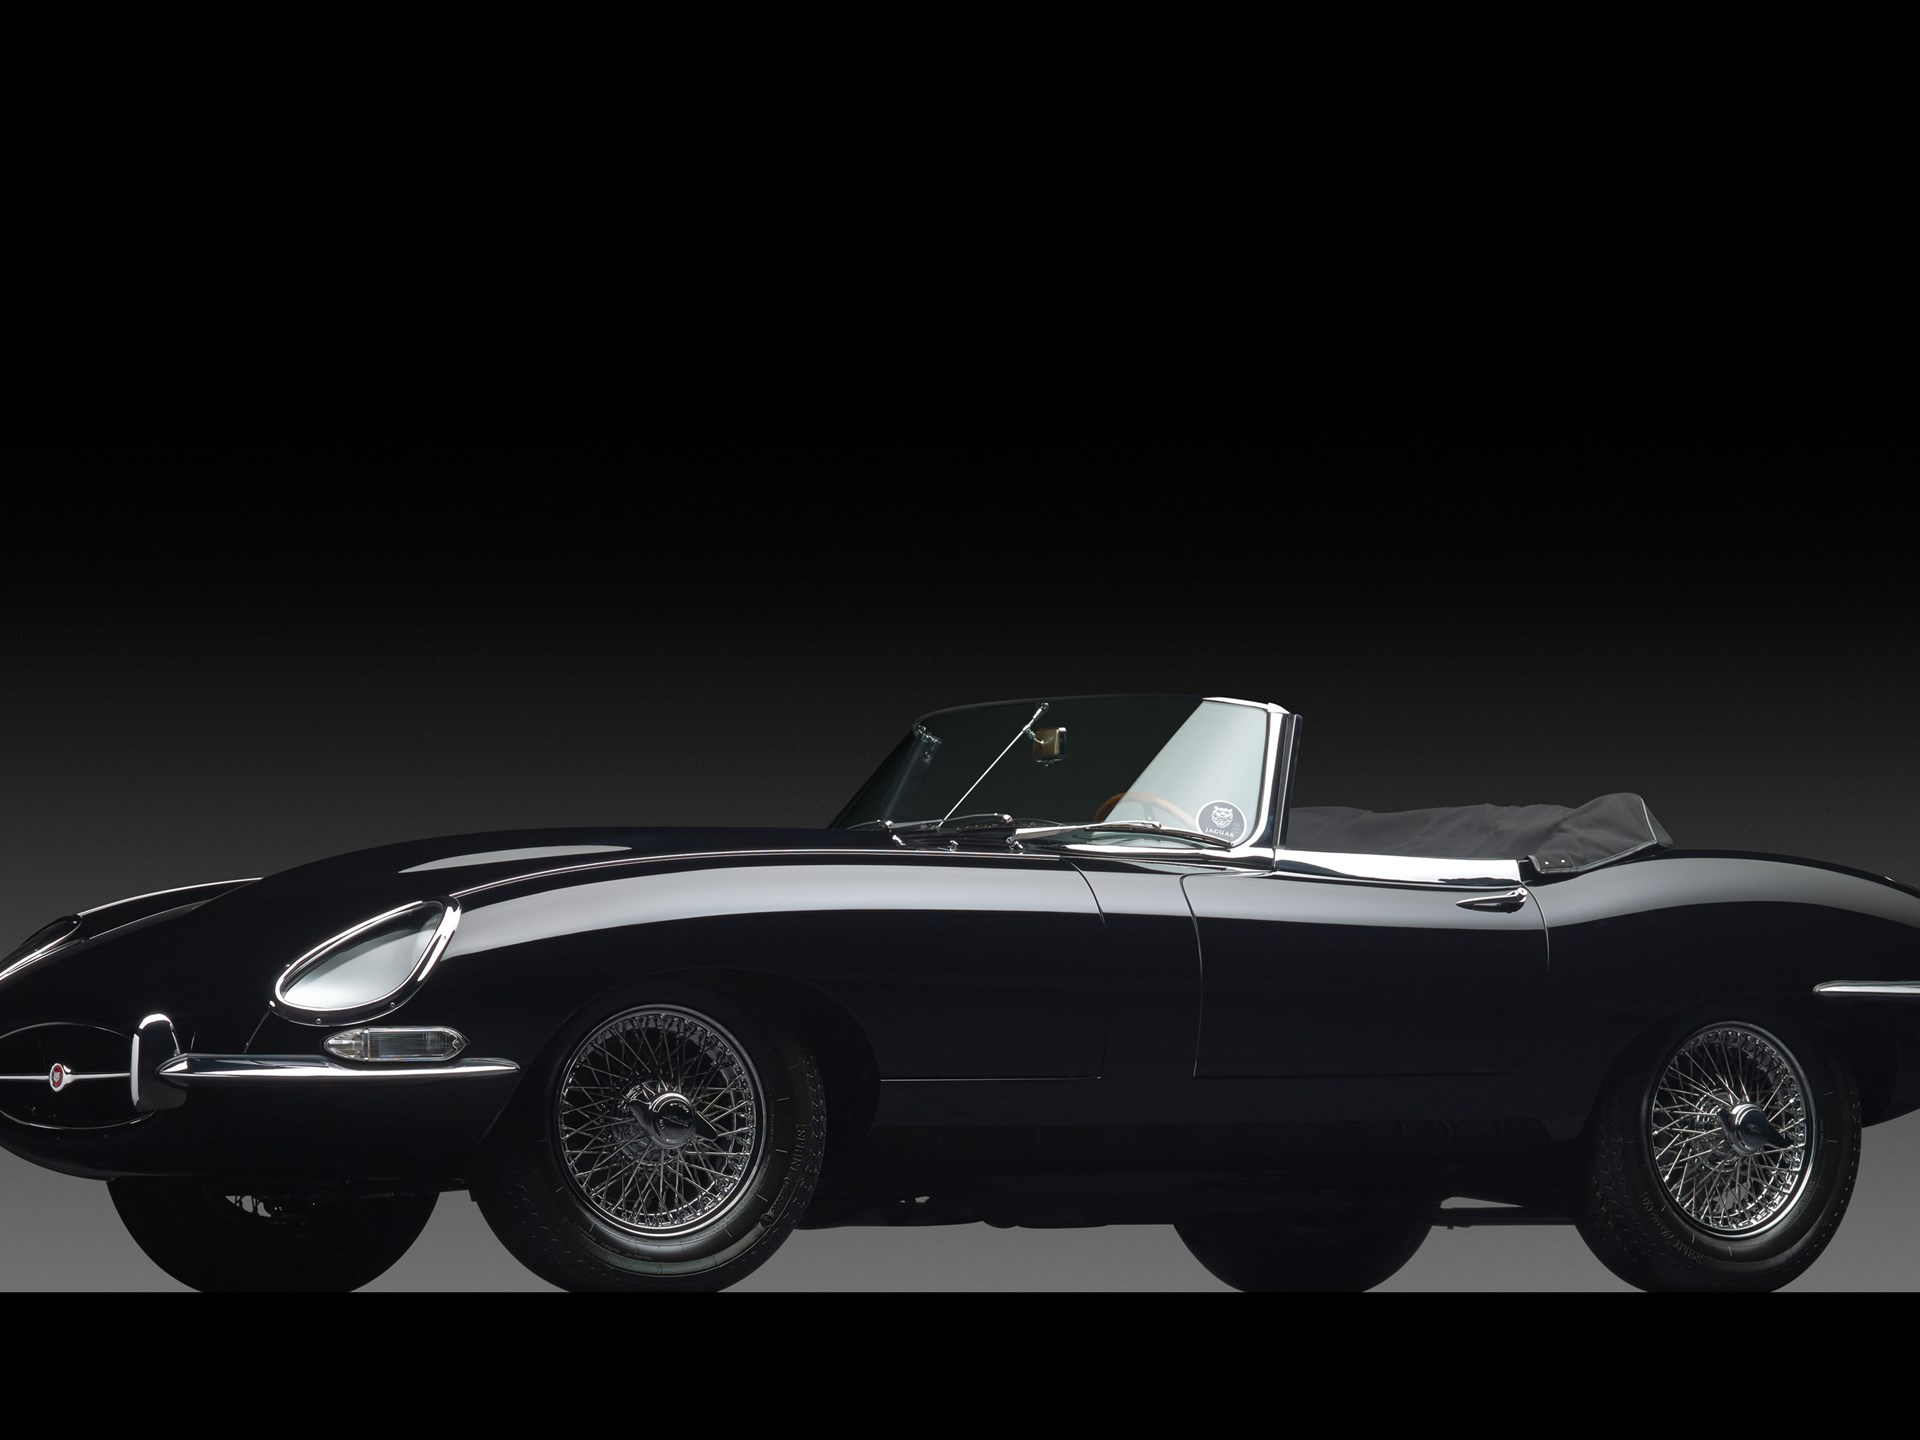 1966 Jaguar E Type Series I 4.2 Litre Roadster